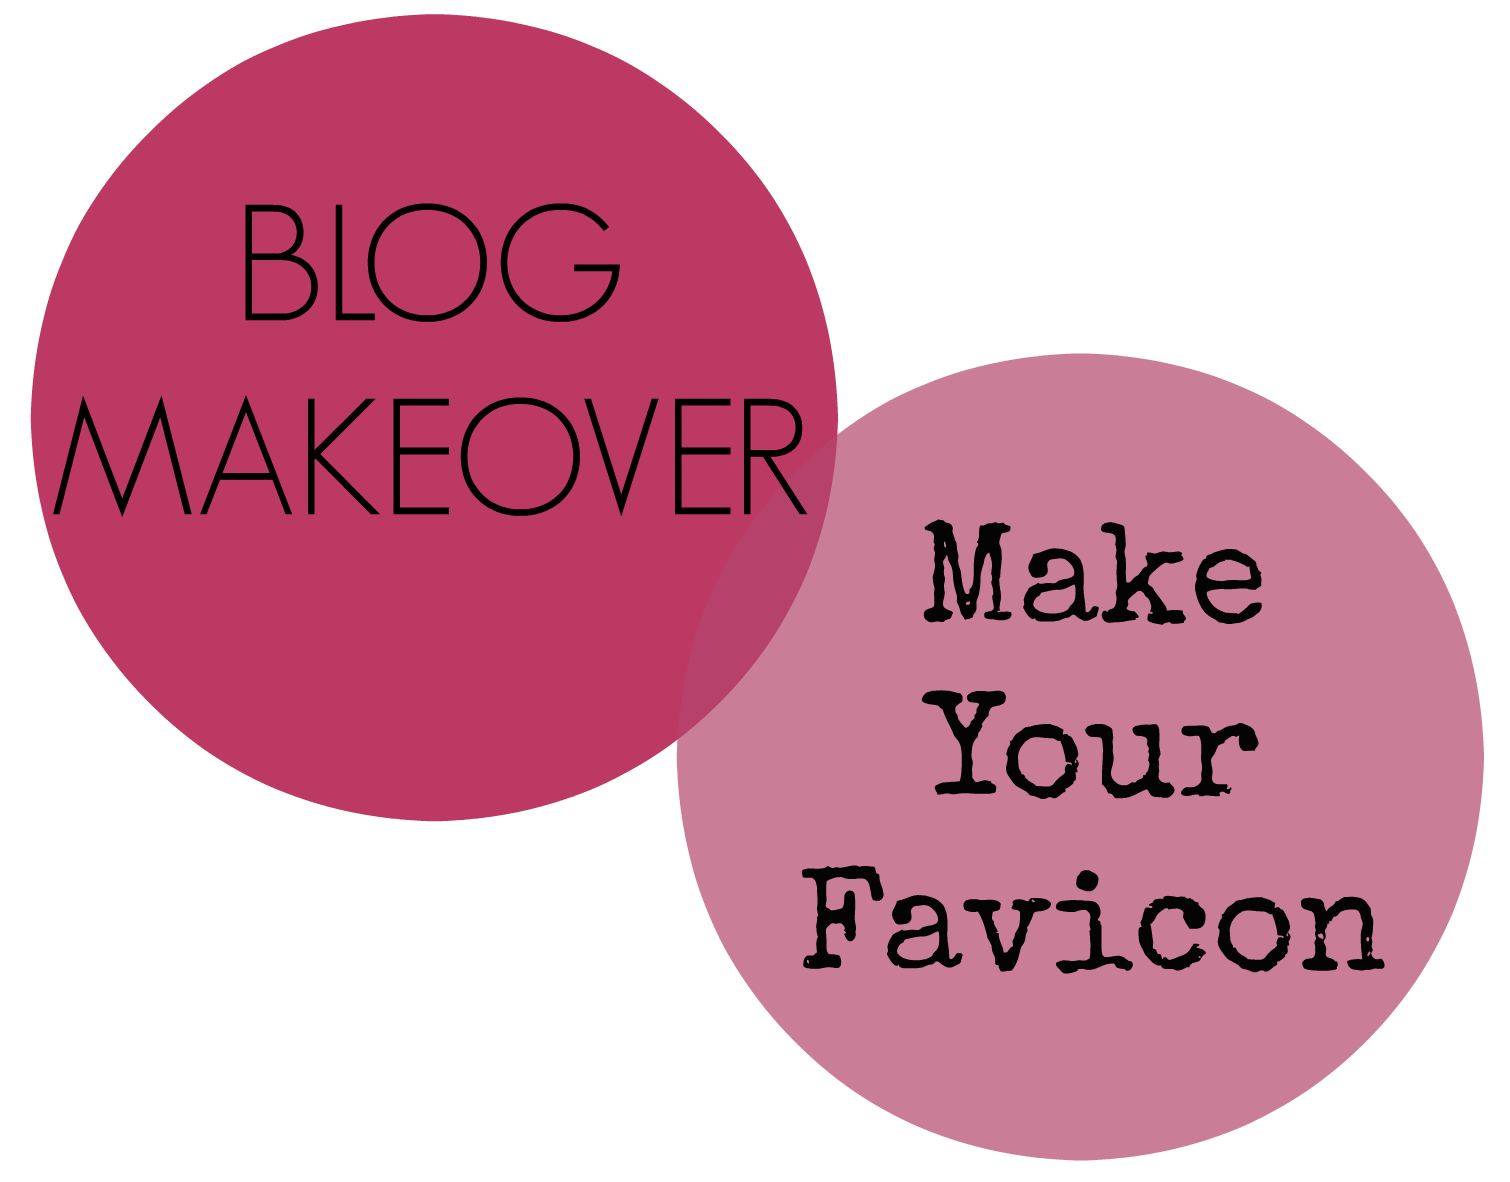 letmecrossover_letscrossover_favicon_blogger_HTML_tips_fashion_beauty